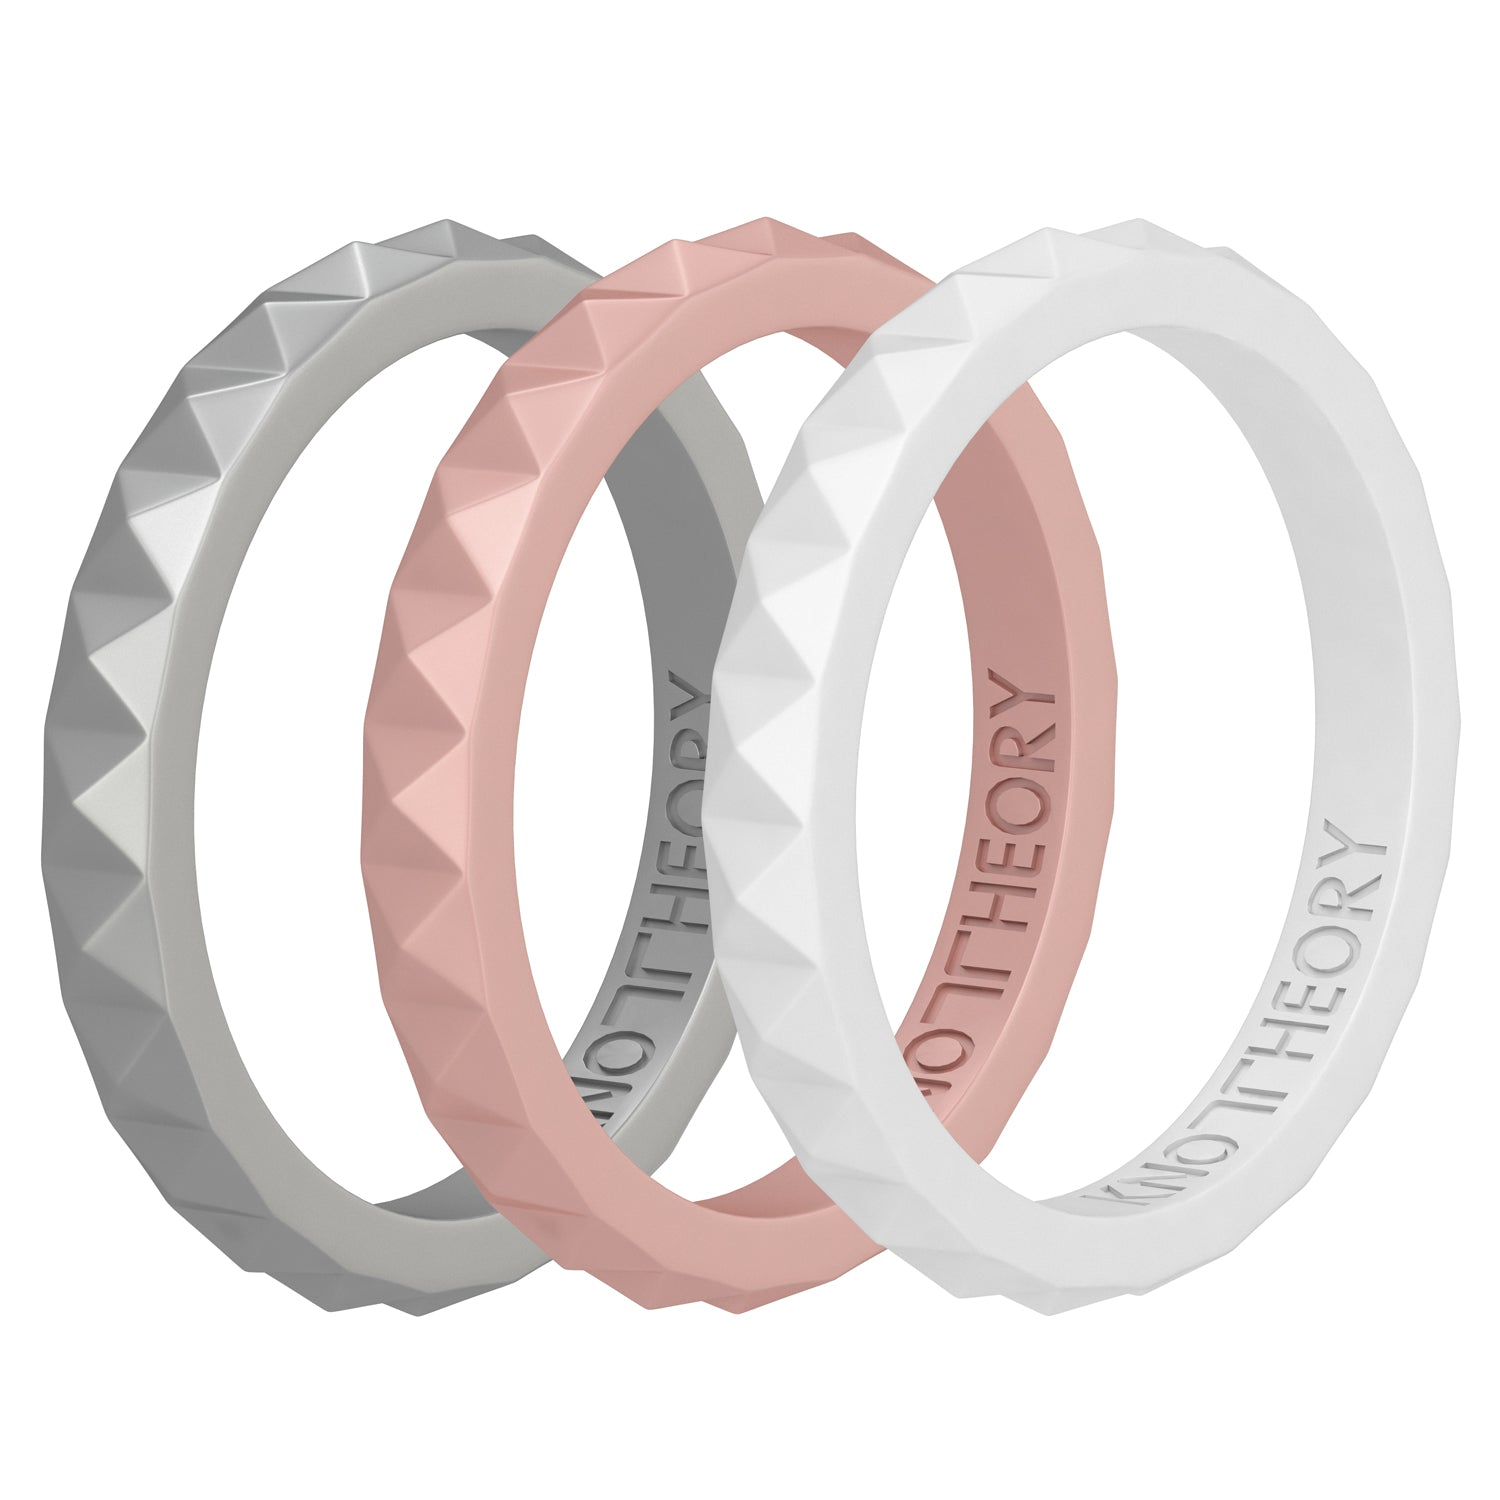 Bliss Stackable Silicone Wedding Rings for Women - 3-Pack in Rose Gold, Silver, Pearl White